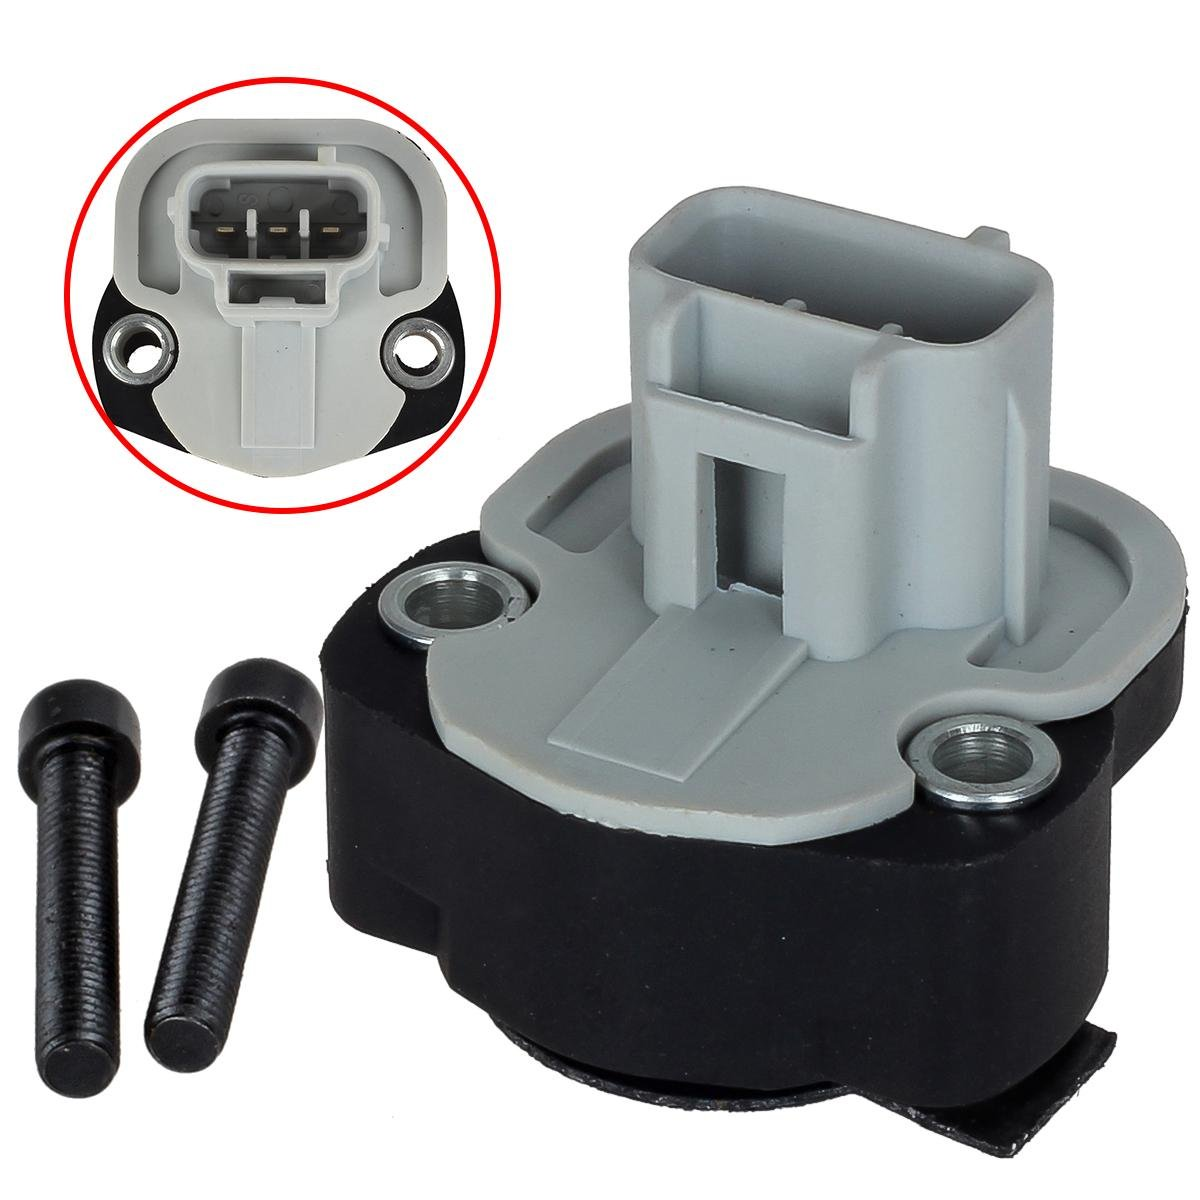 AUTEX Throttle Position Sensor TPS 5S5101 TH190 TPS333 4882219 4882219AA 4882219AB 5014479AA 5017479AA 53030807AB compatible with 1999 2000 2001 2002 2003 Dodge Ram 1500 2500 3500 Van